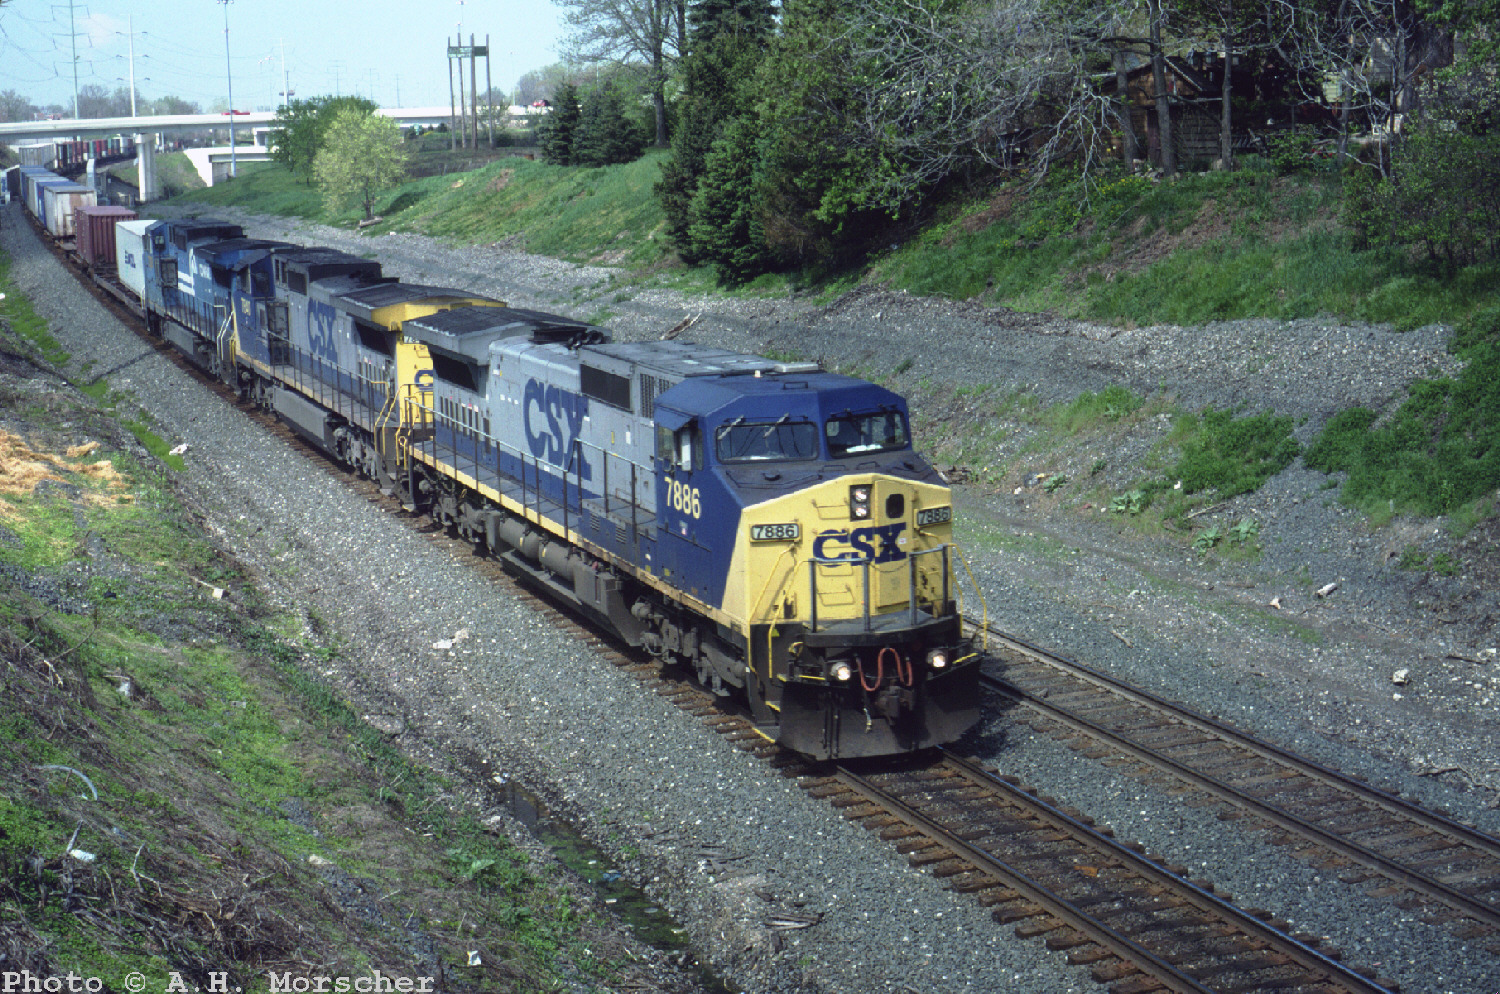 Morscher S 2003 Railroad Images Sorted By Date